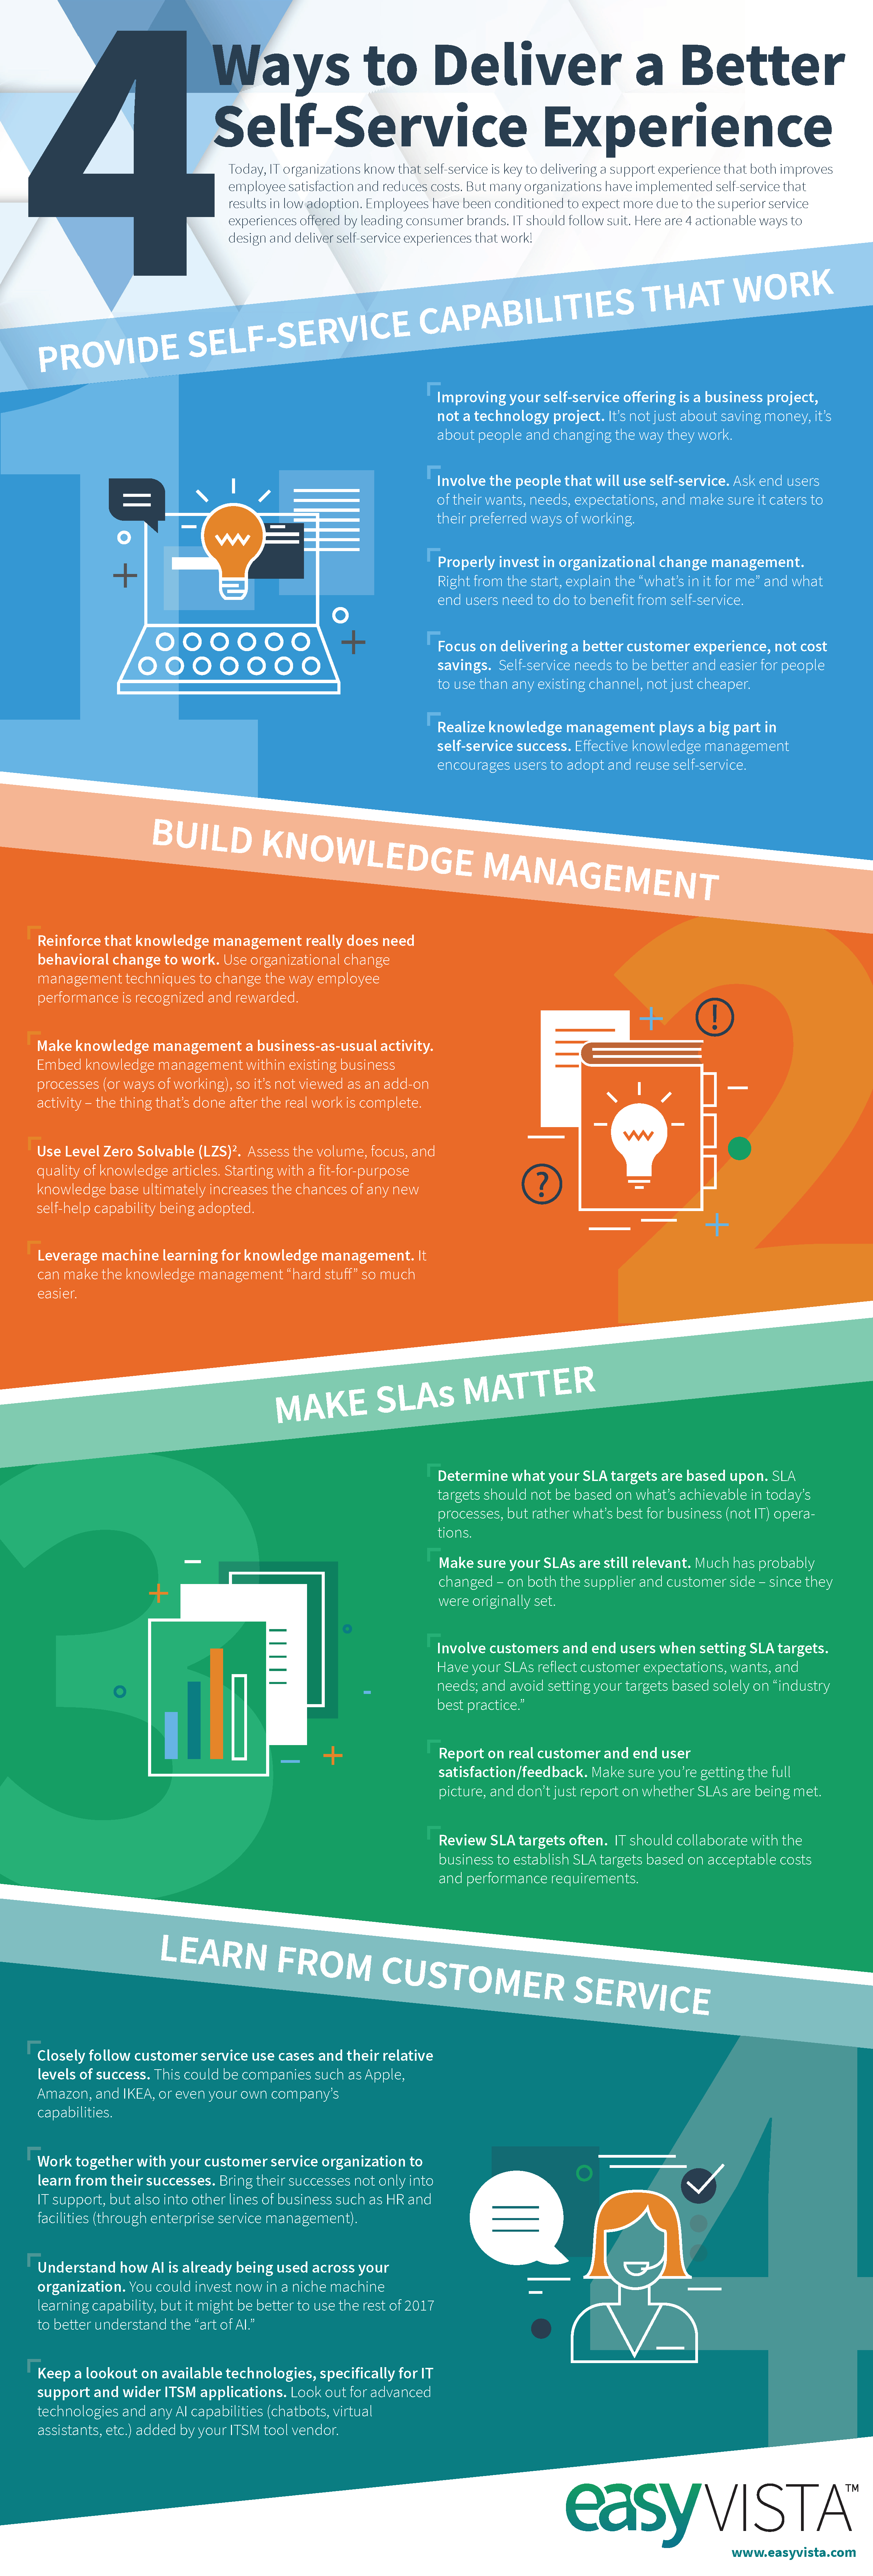 eGUIDE-4-Ways-to-Deliver-a-Better-Self-Service-Experience